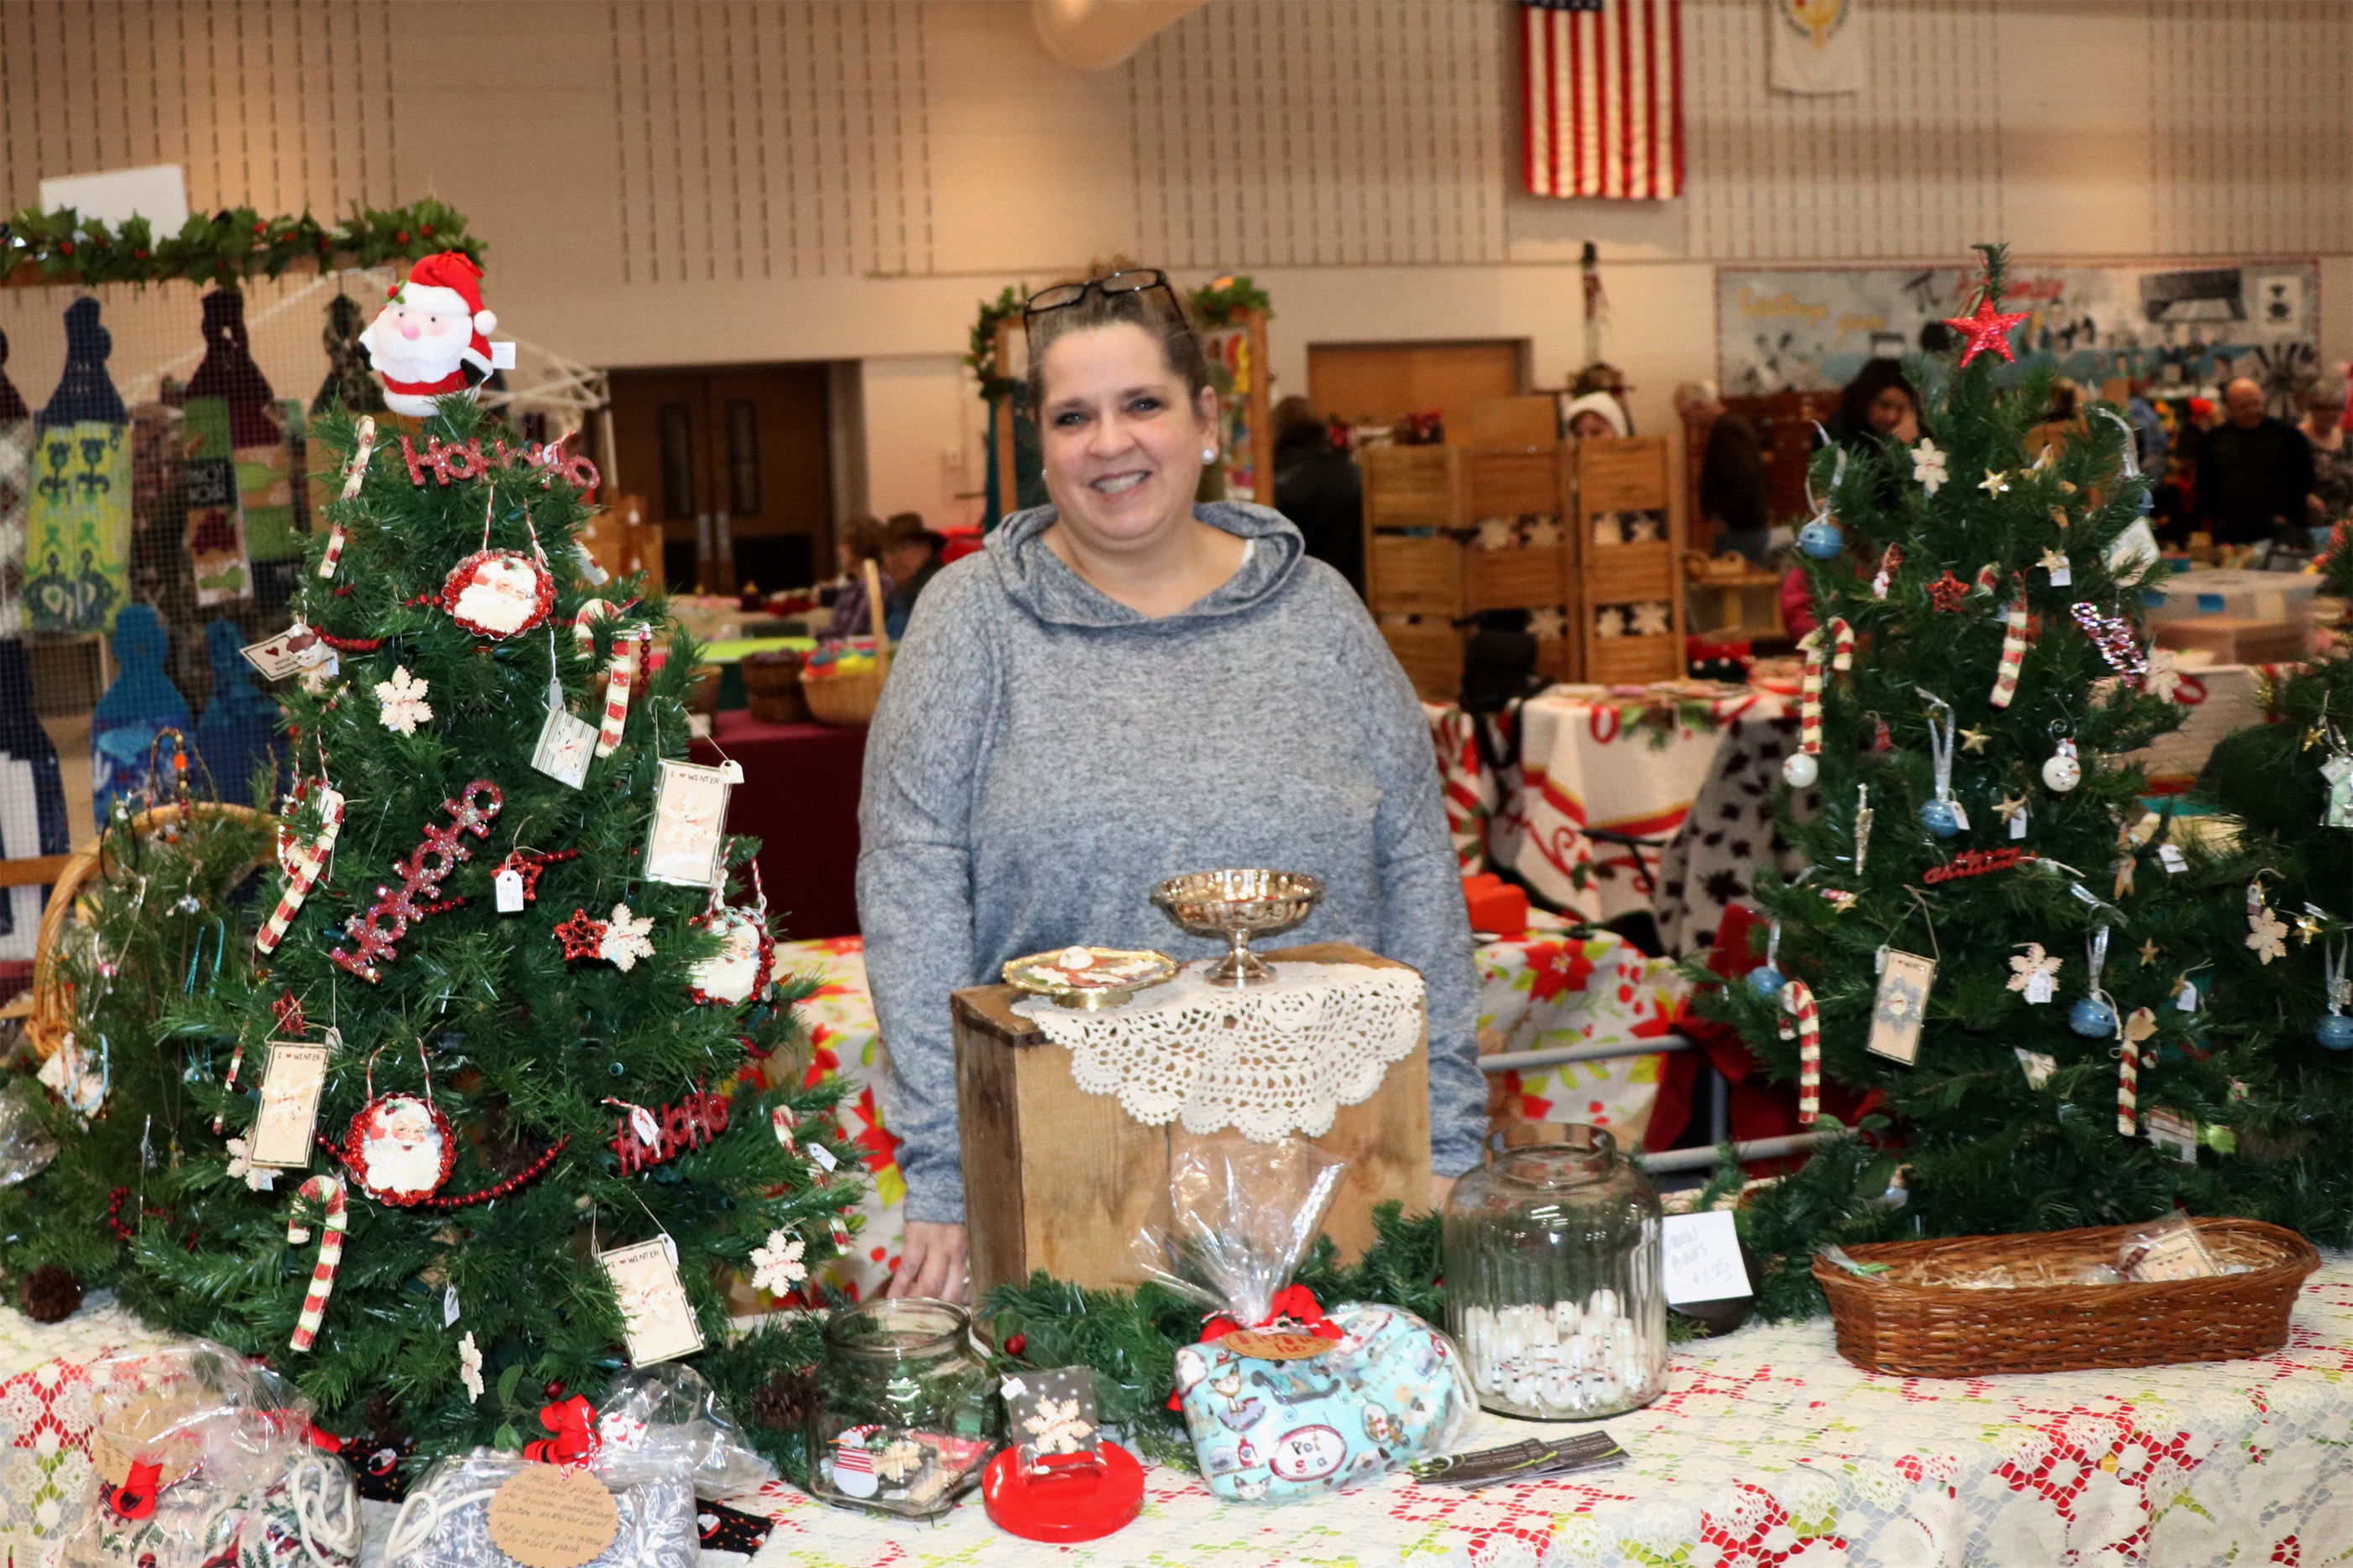 Joanne shares her homemade crafts at the Christmas Gift and Craft Show in Minocqua. Kim Johnson photo